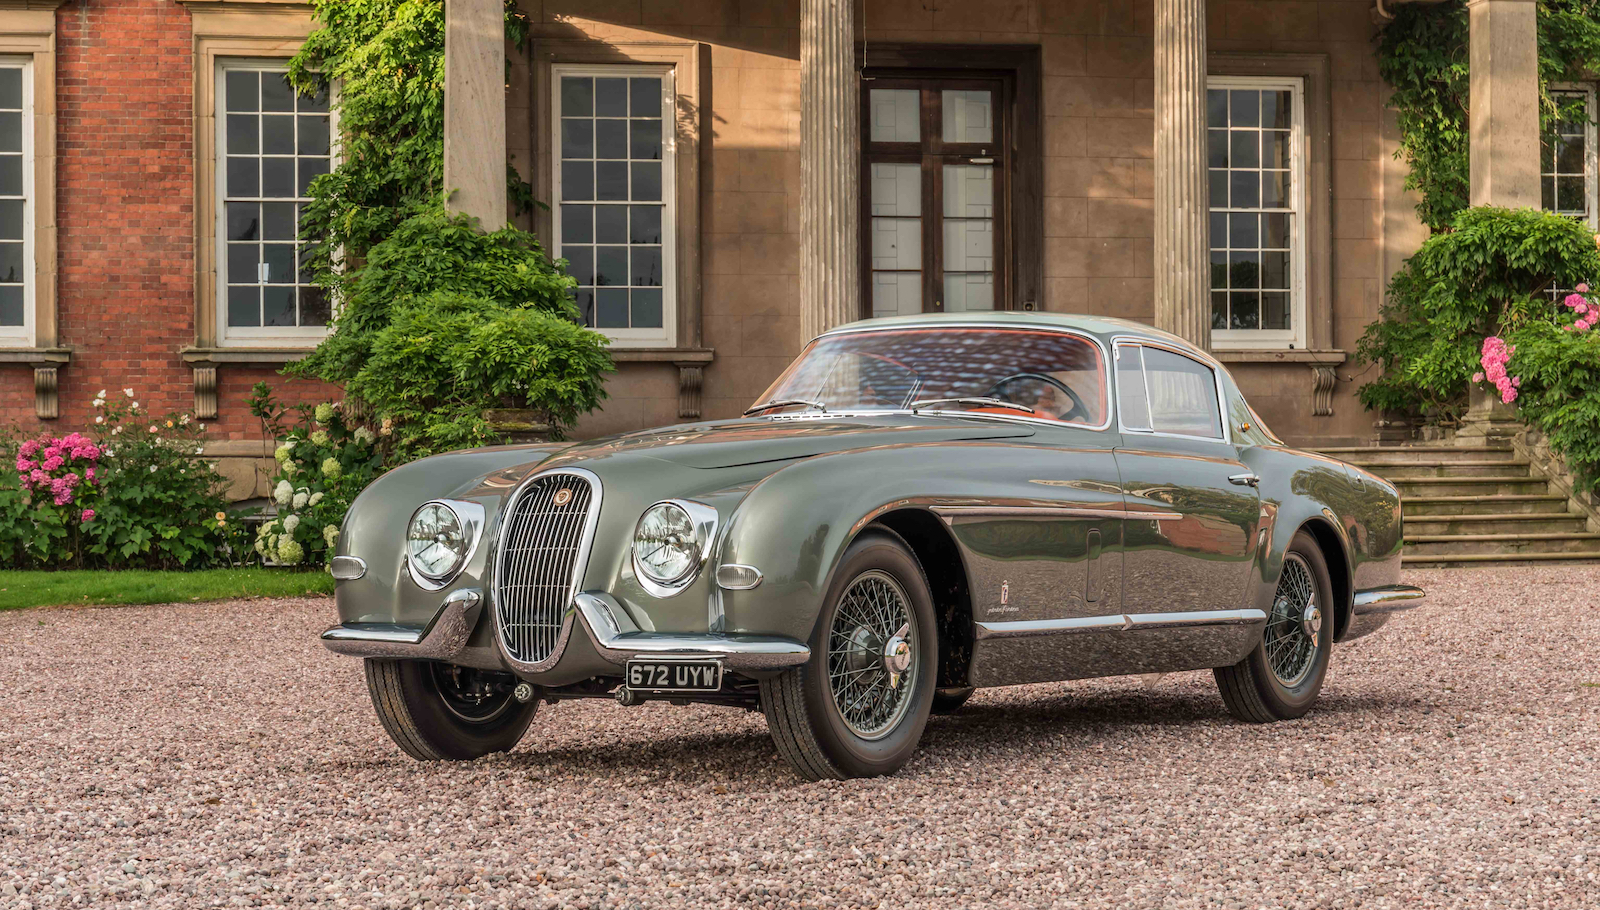 One-off Jaguar XK120 unveiled at Pebble Beach after 6500-hour restoration